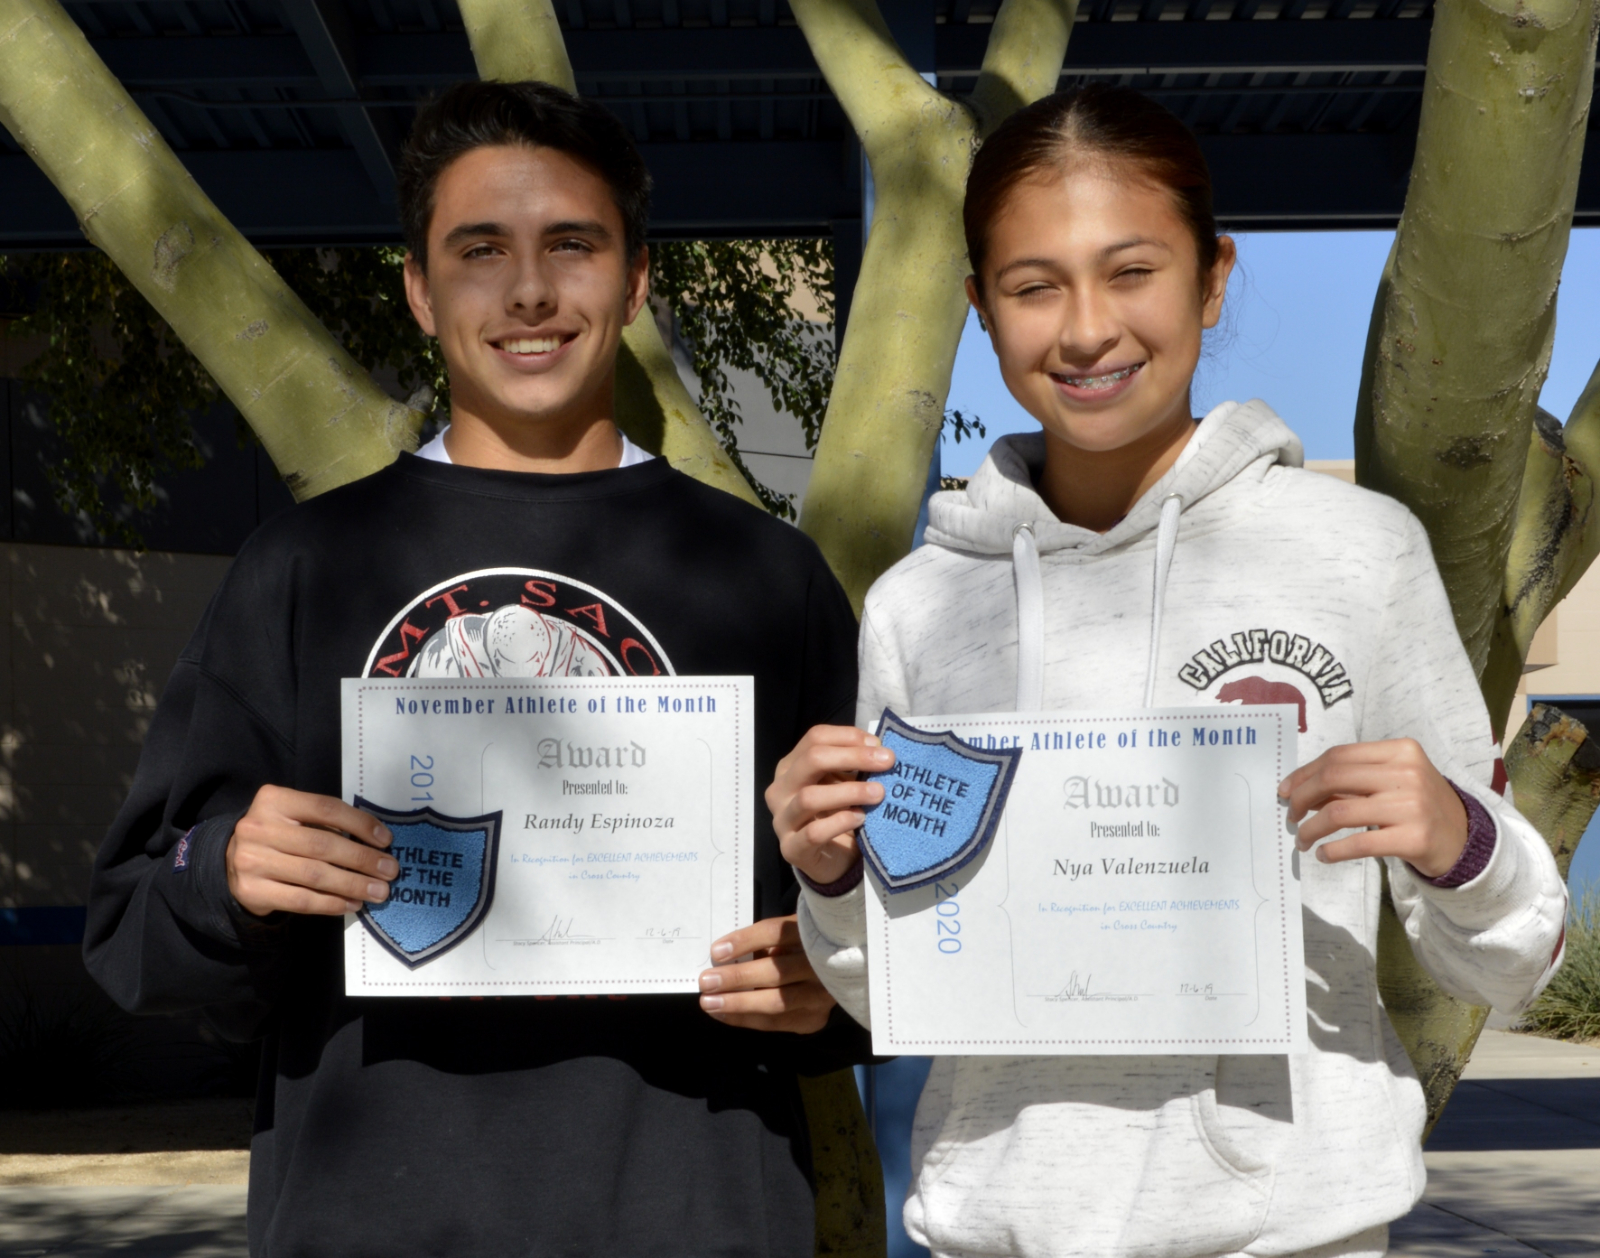 Congratulations November Athletes of the Month!